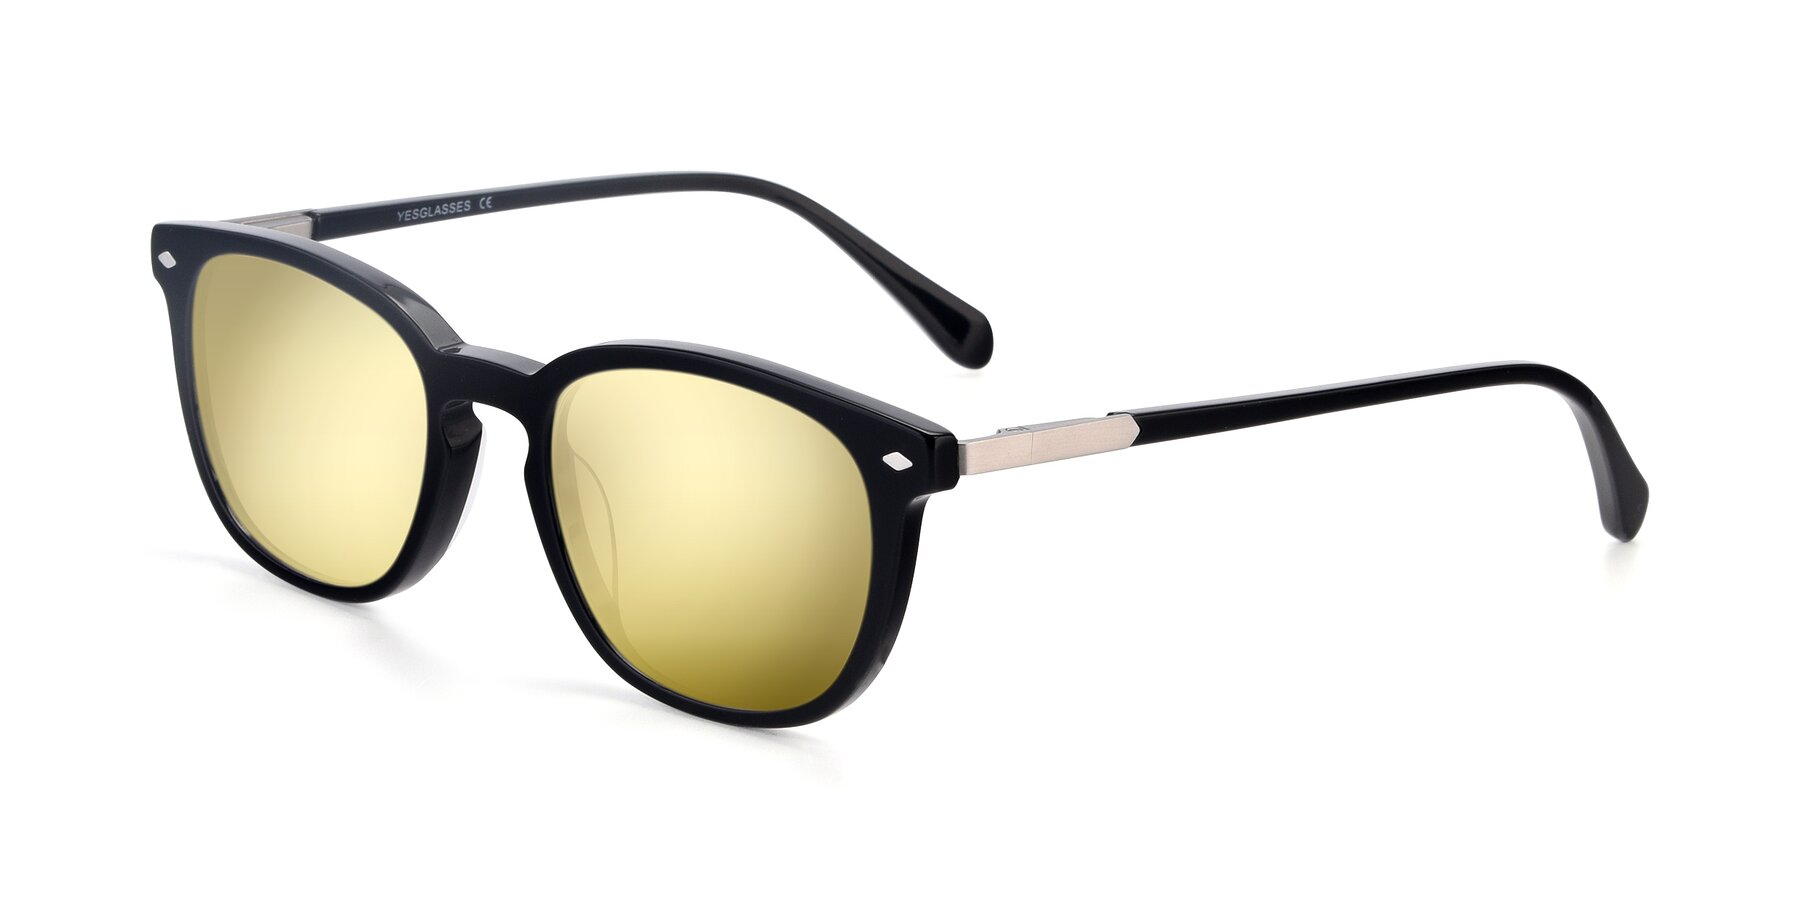 Angle of 17578 in Black with Gold Mirrored Lenses